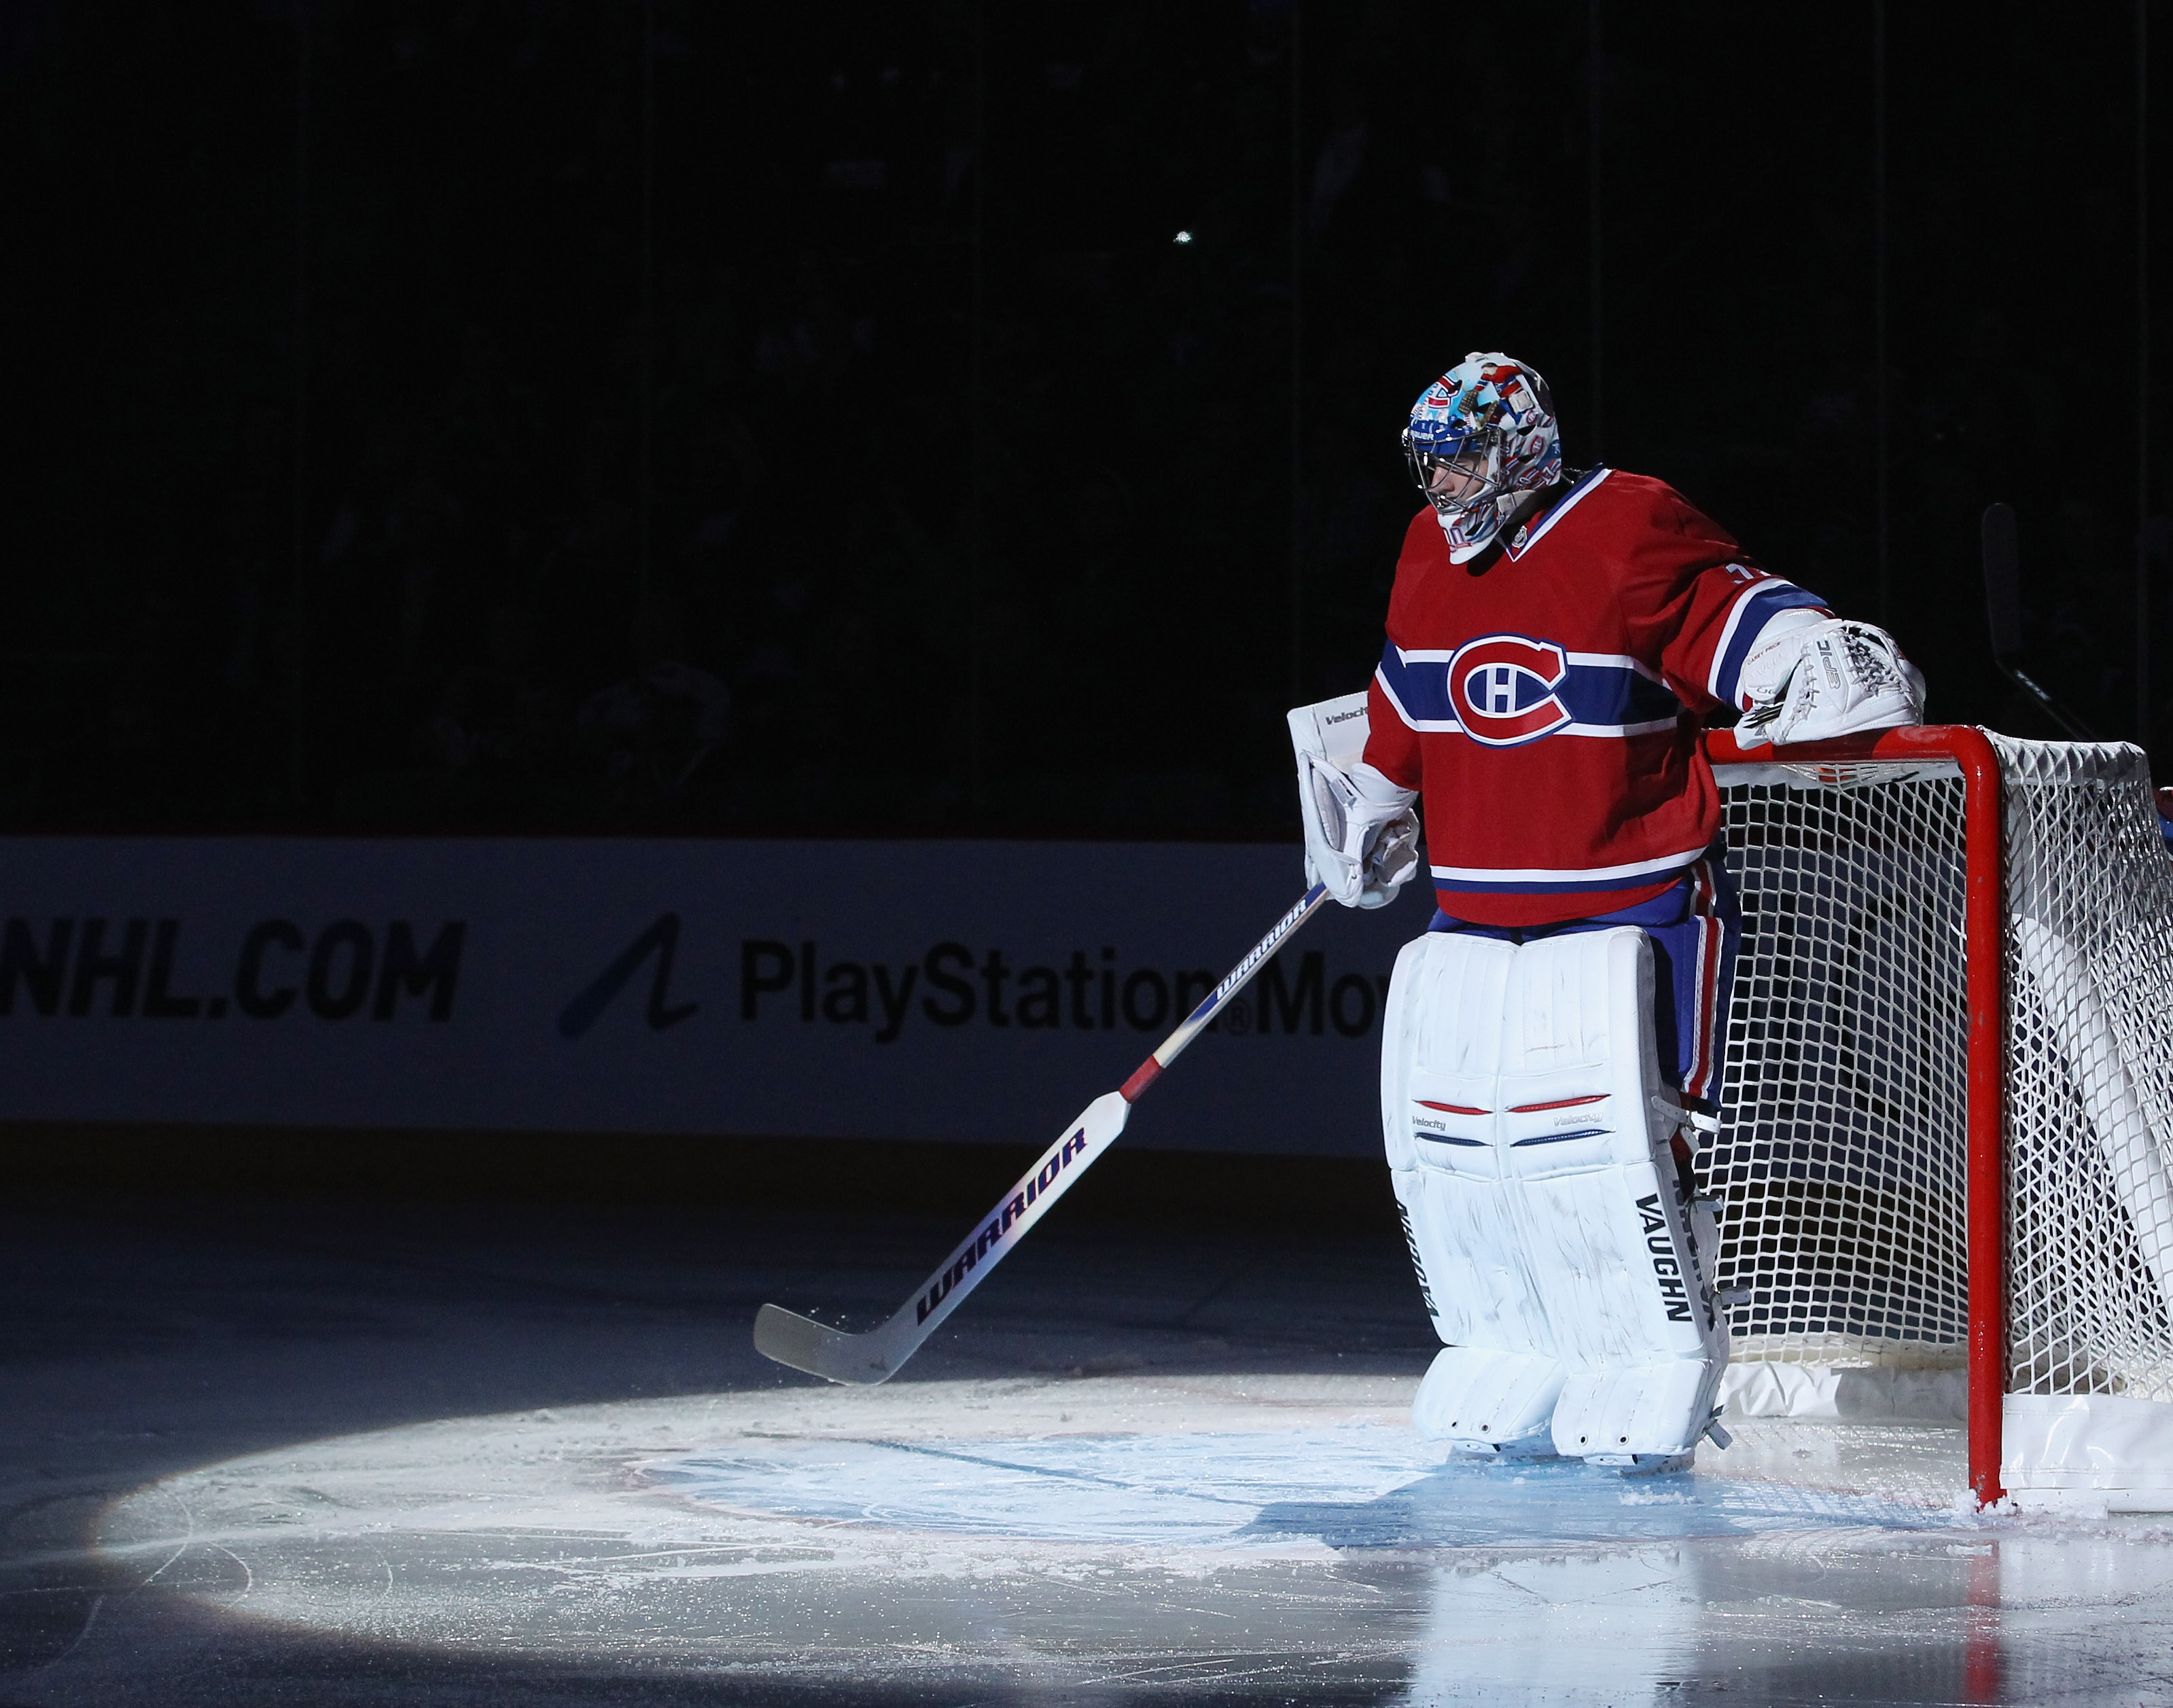 MONTREAL, QC - SEPTEMBER 27:  Carey Price #31 of the Montreal Canadiens prepares for his game against the Florida Panthers at the Bell Centre on September 27, 2010 in Montreal, Canada.  (Photo by Bruce Bennett/Getty Images)